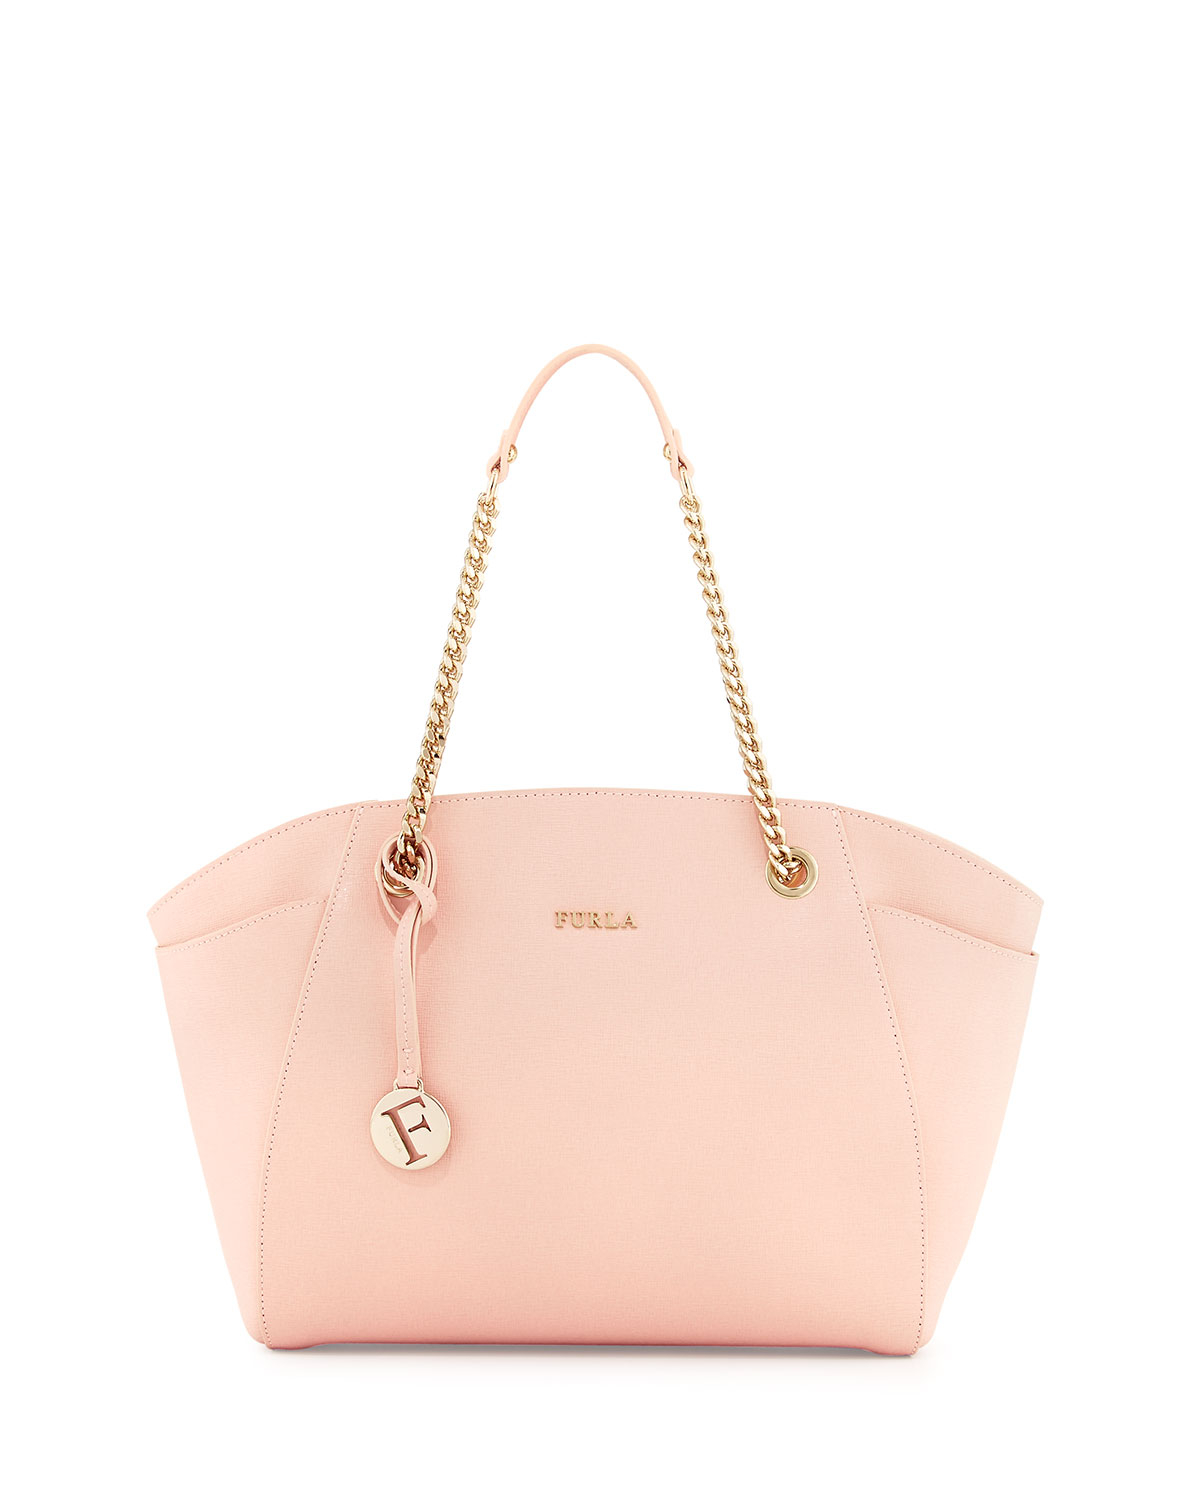 998a7a2e948a Lyst - Furla Julia East-West Leather Tote Bag in Pink